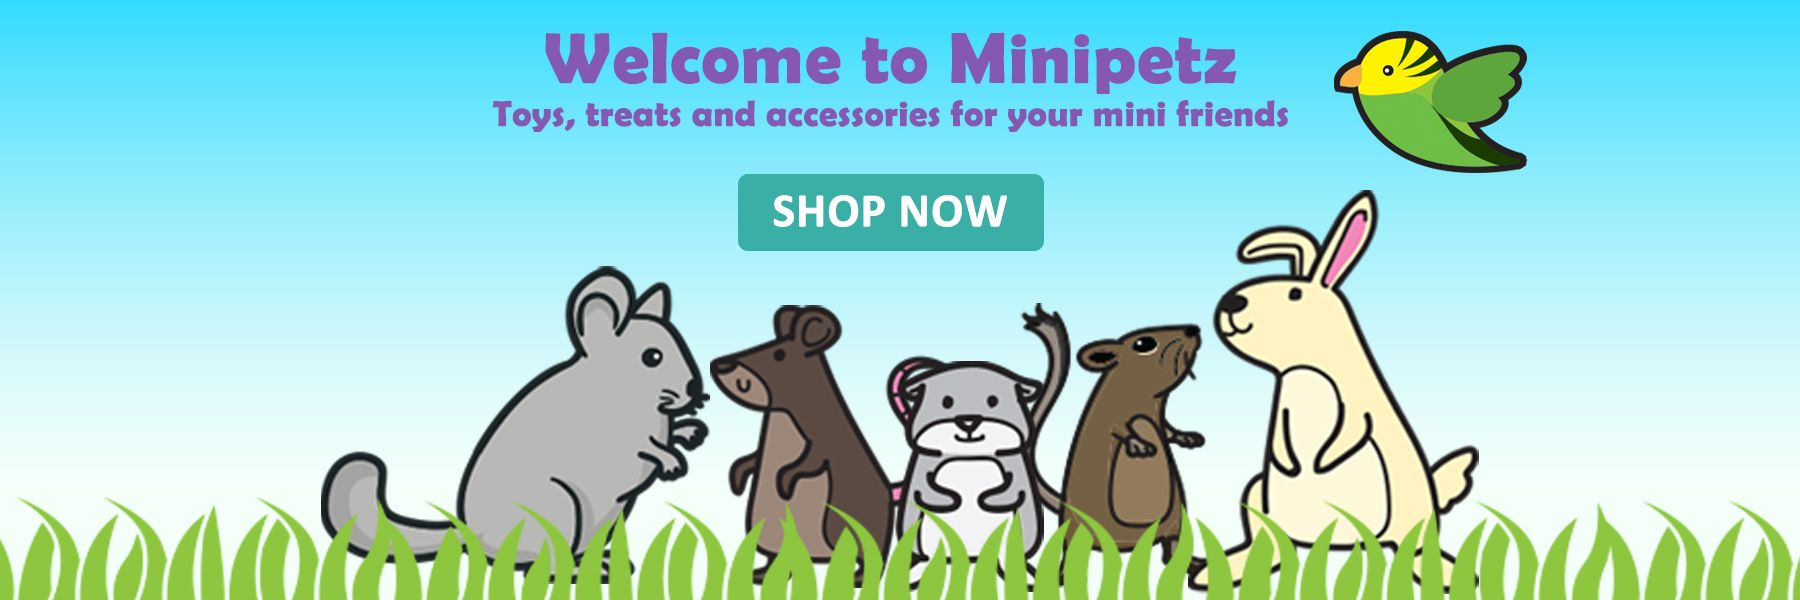 toys, treats and accessories for degus, chinchillas, rabbits, rats and guinea pigs